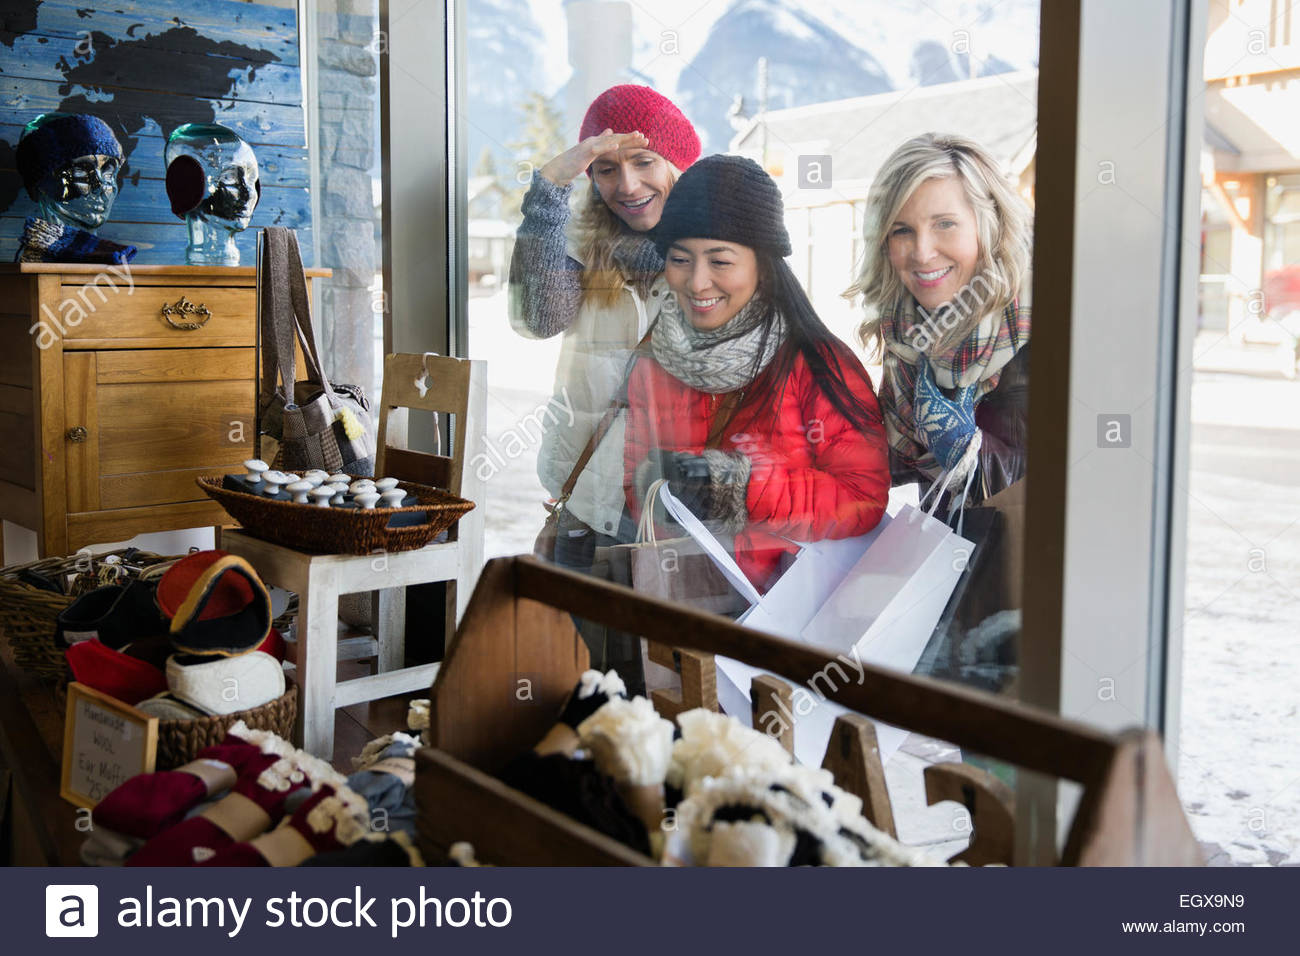 Women in warm clothing window shopping at storefront - Stock Image